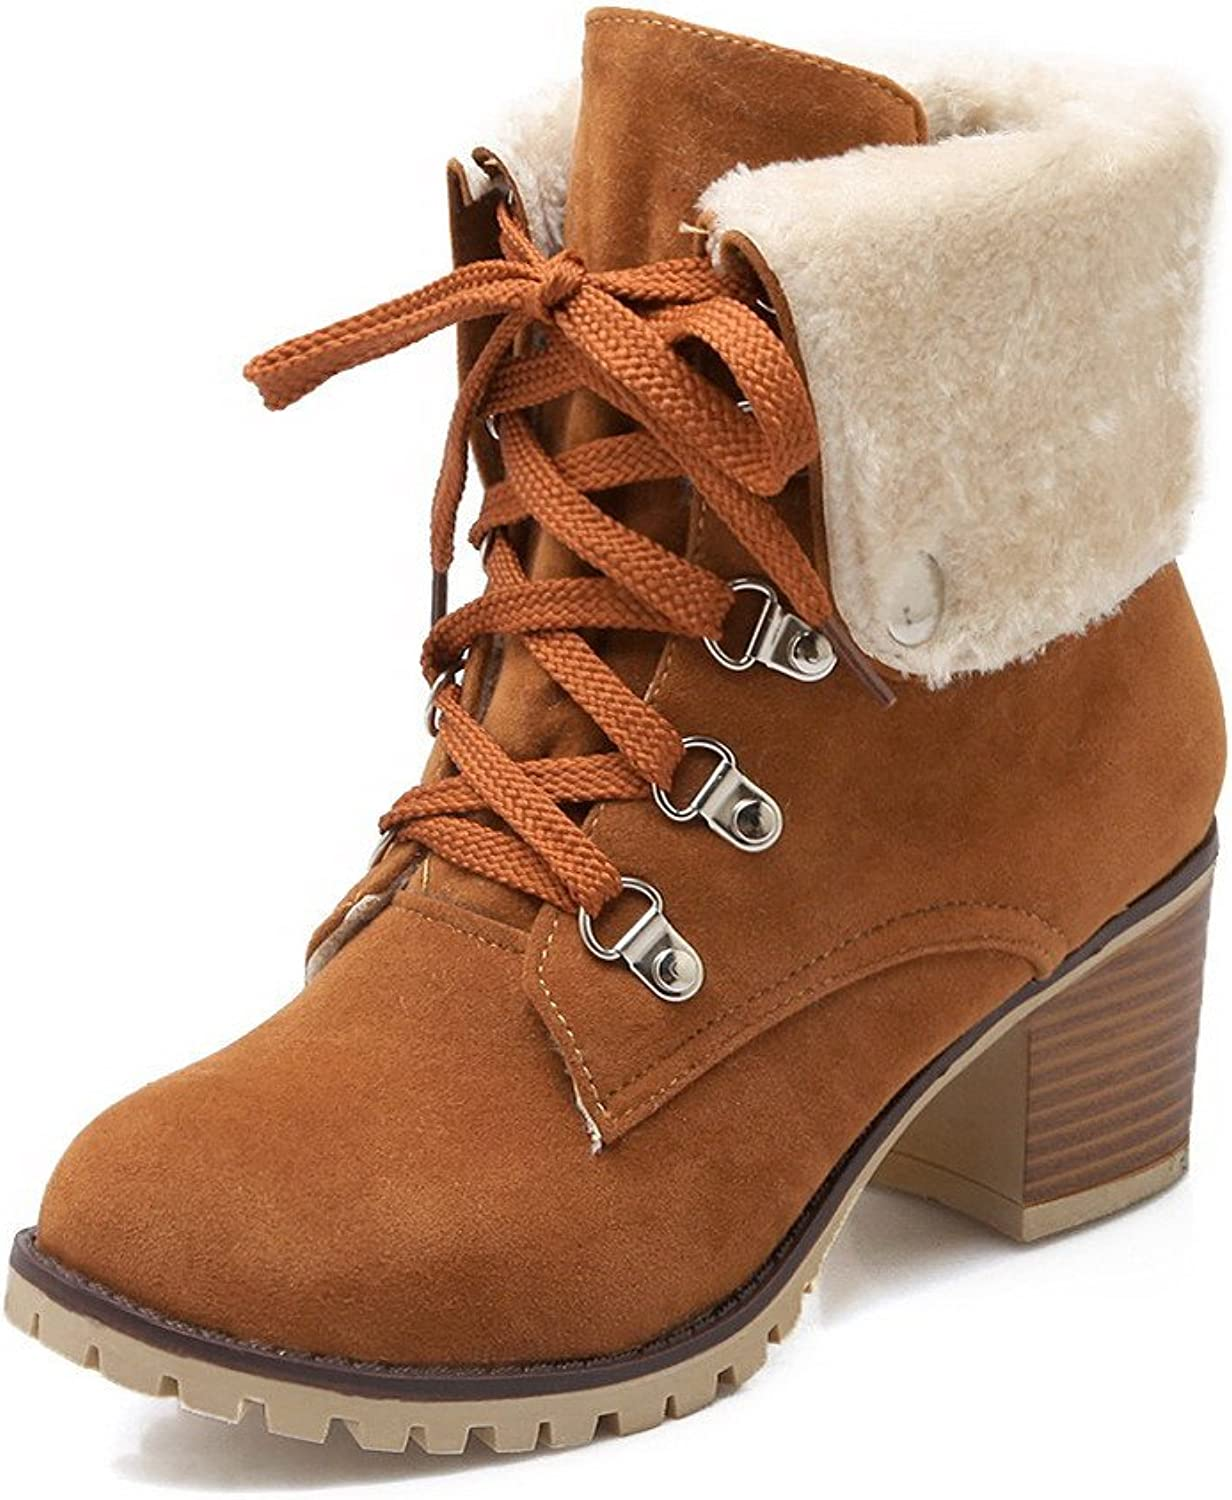 AmoonyFashion Women's Low Top Assorted color Lace up Round Closed Toe High Heels Boots